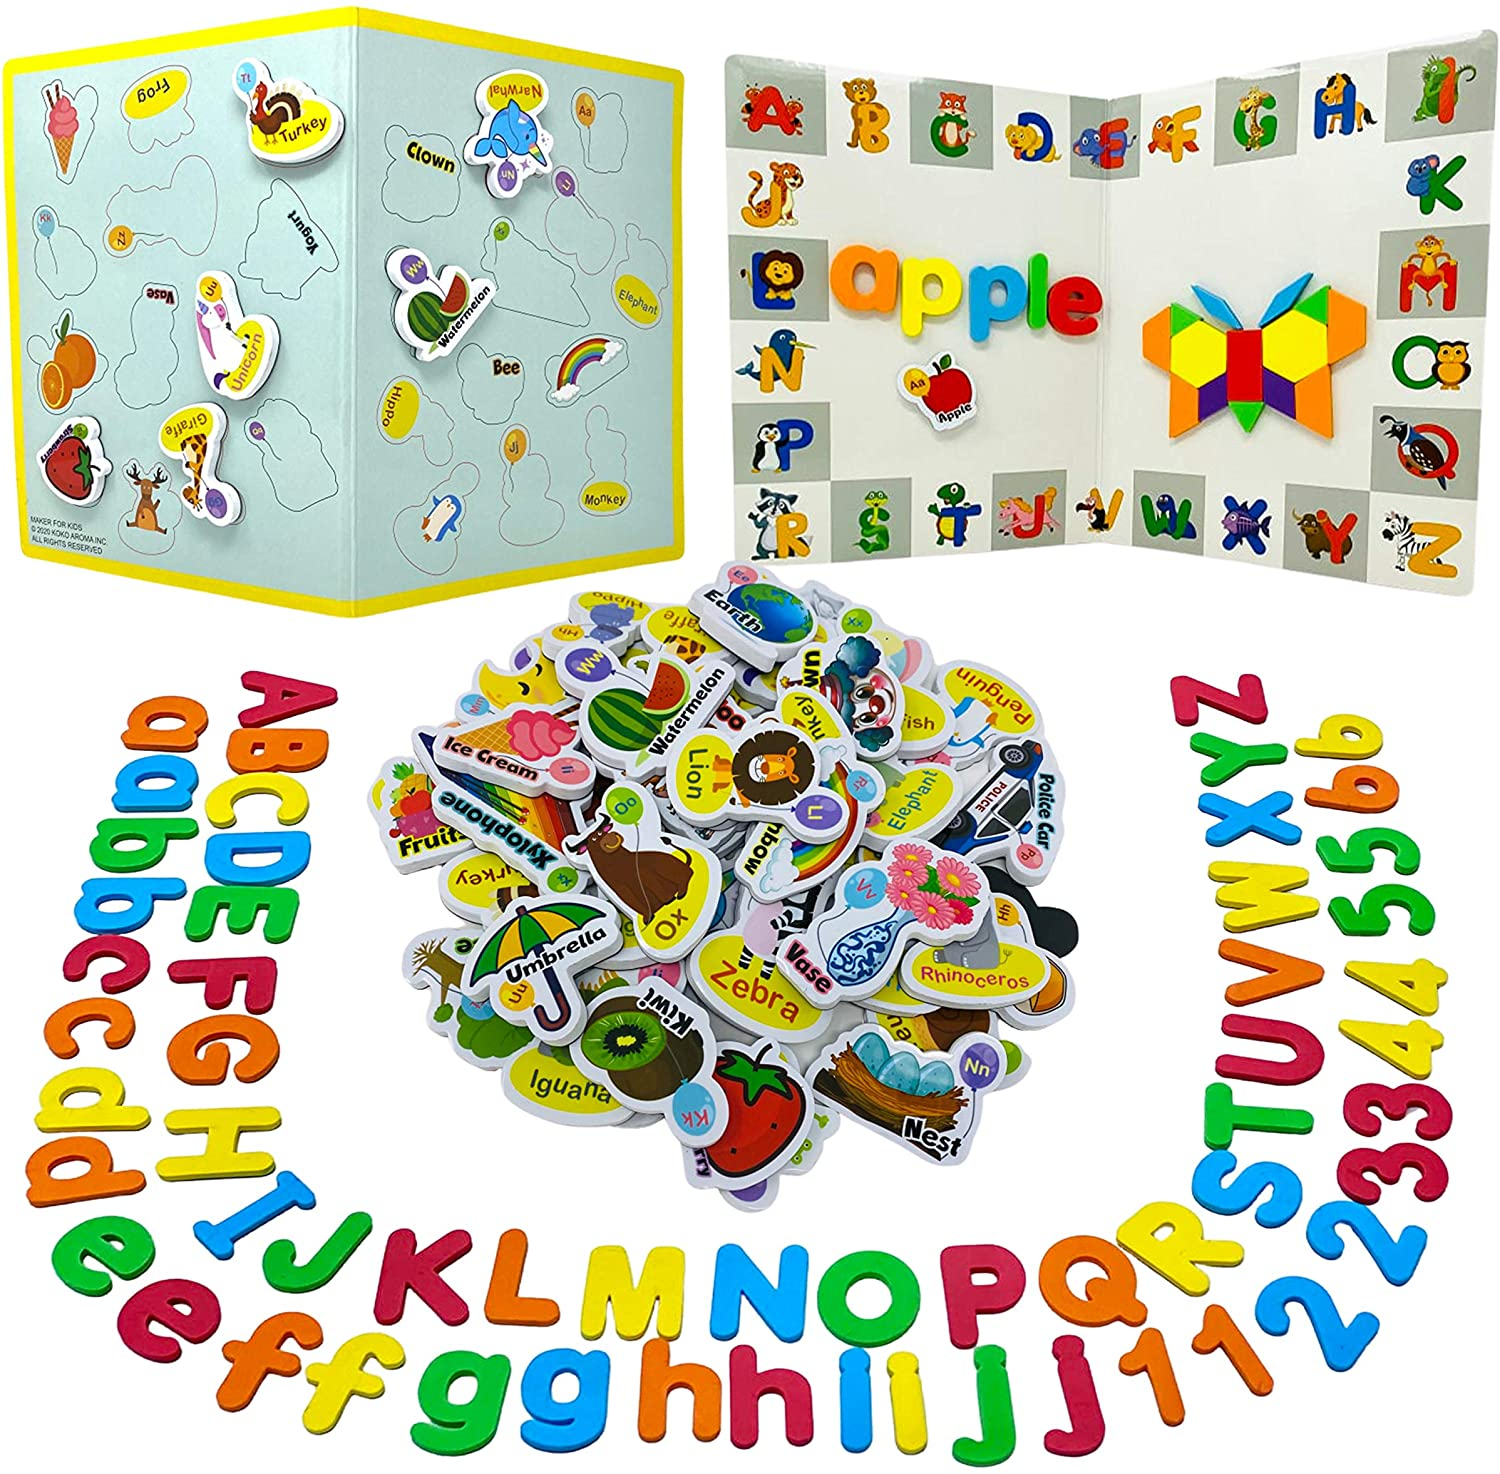 210Pcs Magnetic Letters Numbers, Picture Magnets and Shapes for Kids with Double-Sided Magnet Board - ABC Uppercase Lowercase Foam Alphabet for Kids - Spelling Learning Set in Classroom at Home